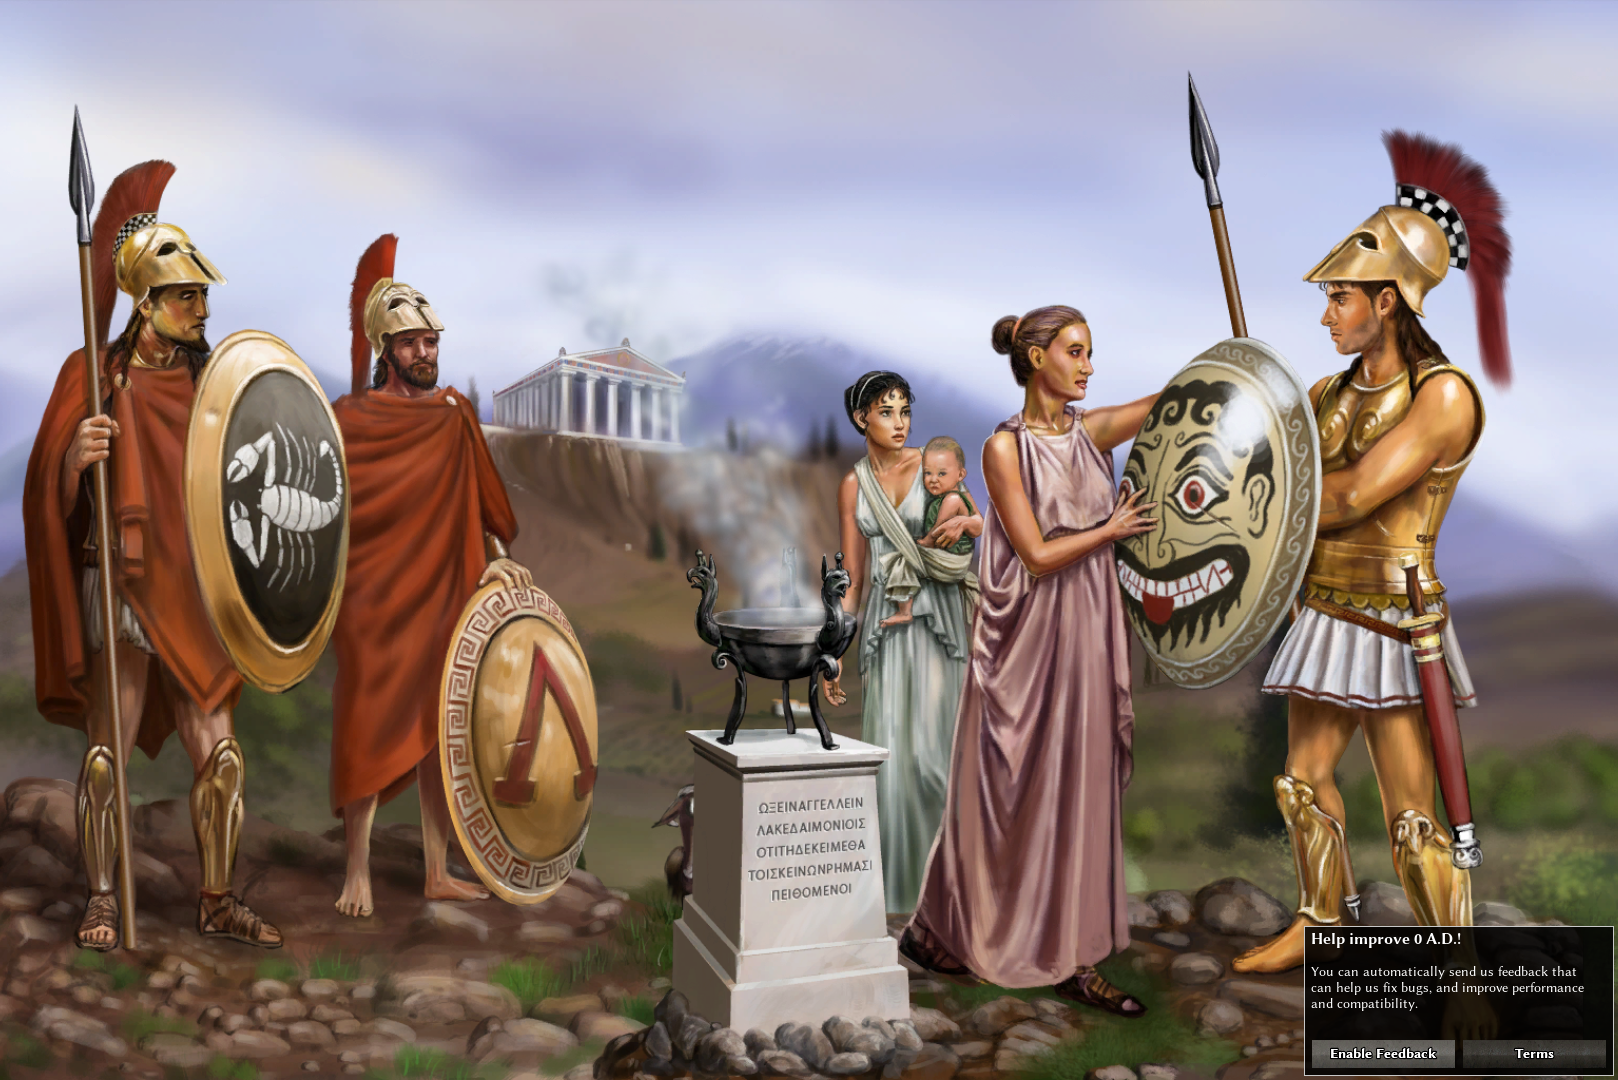 0 A.D. Part II: Bring in the Queens!